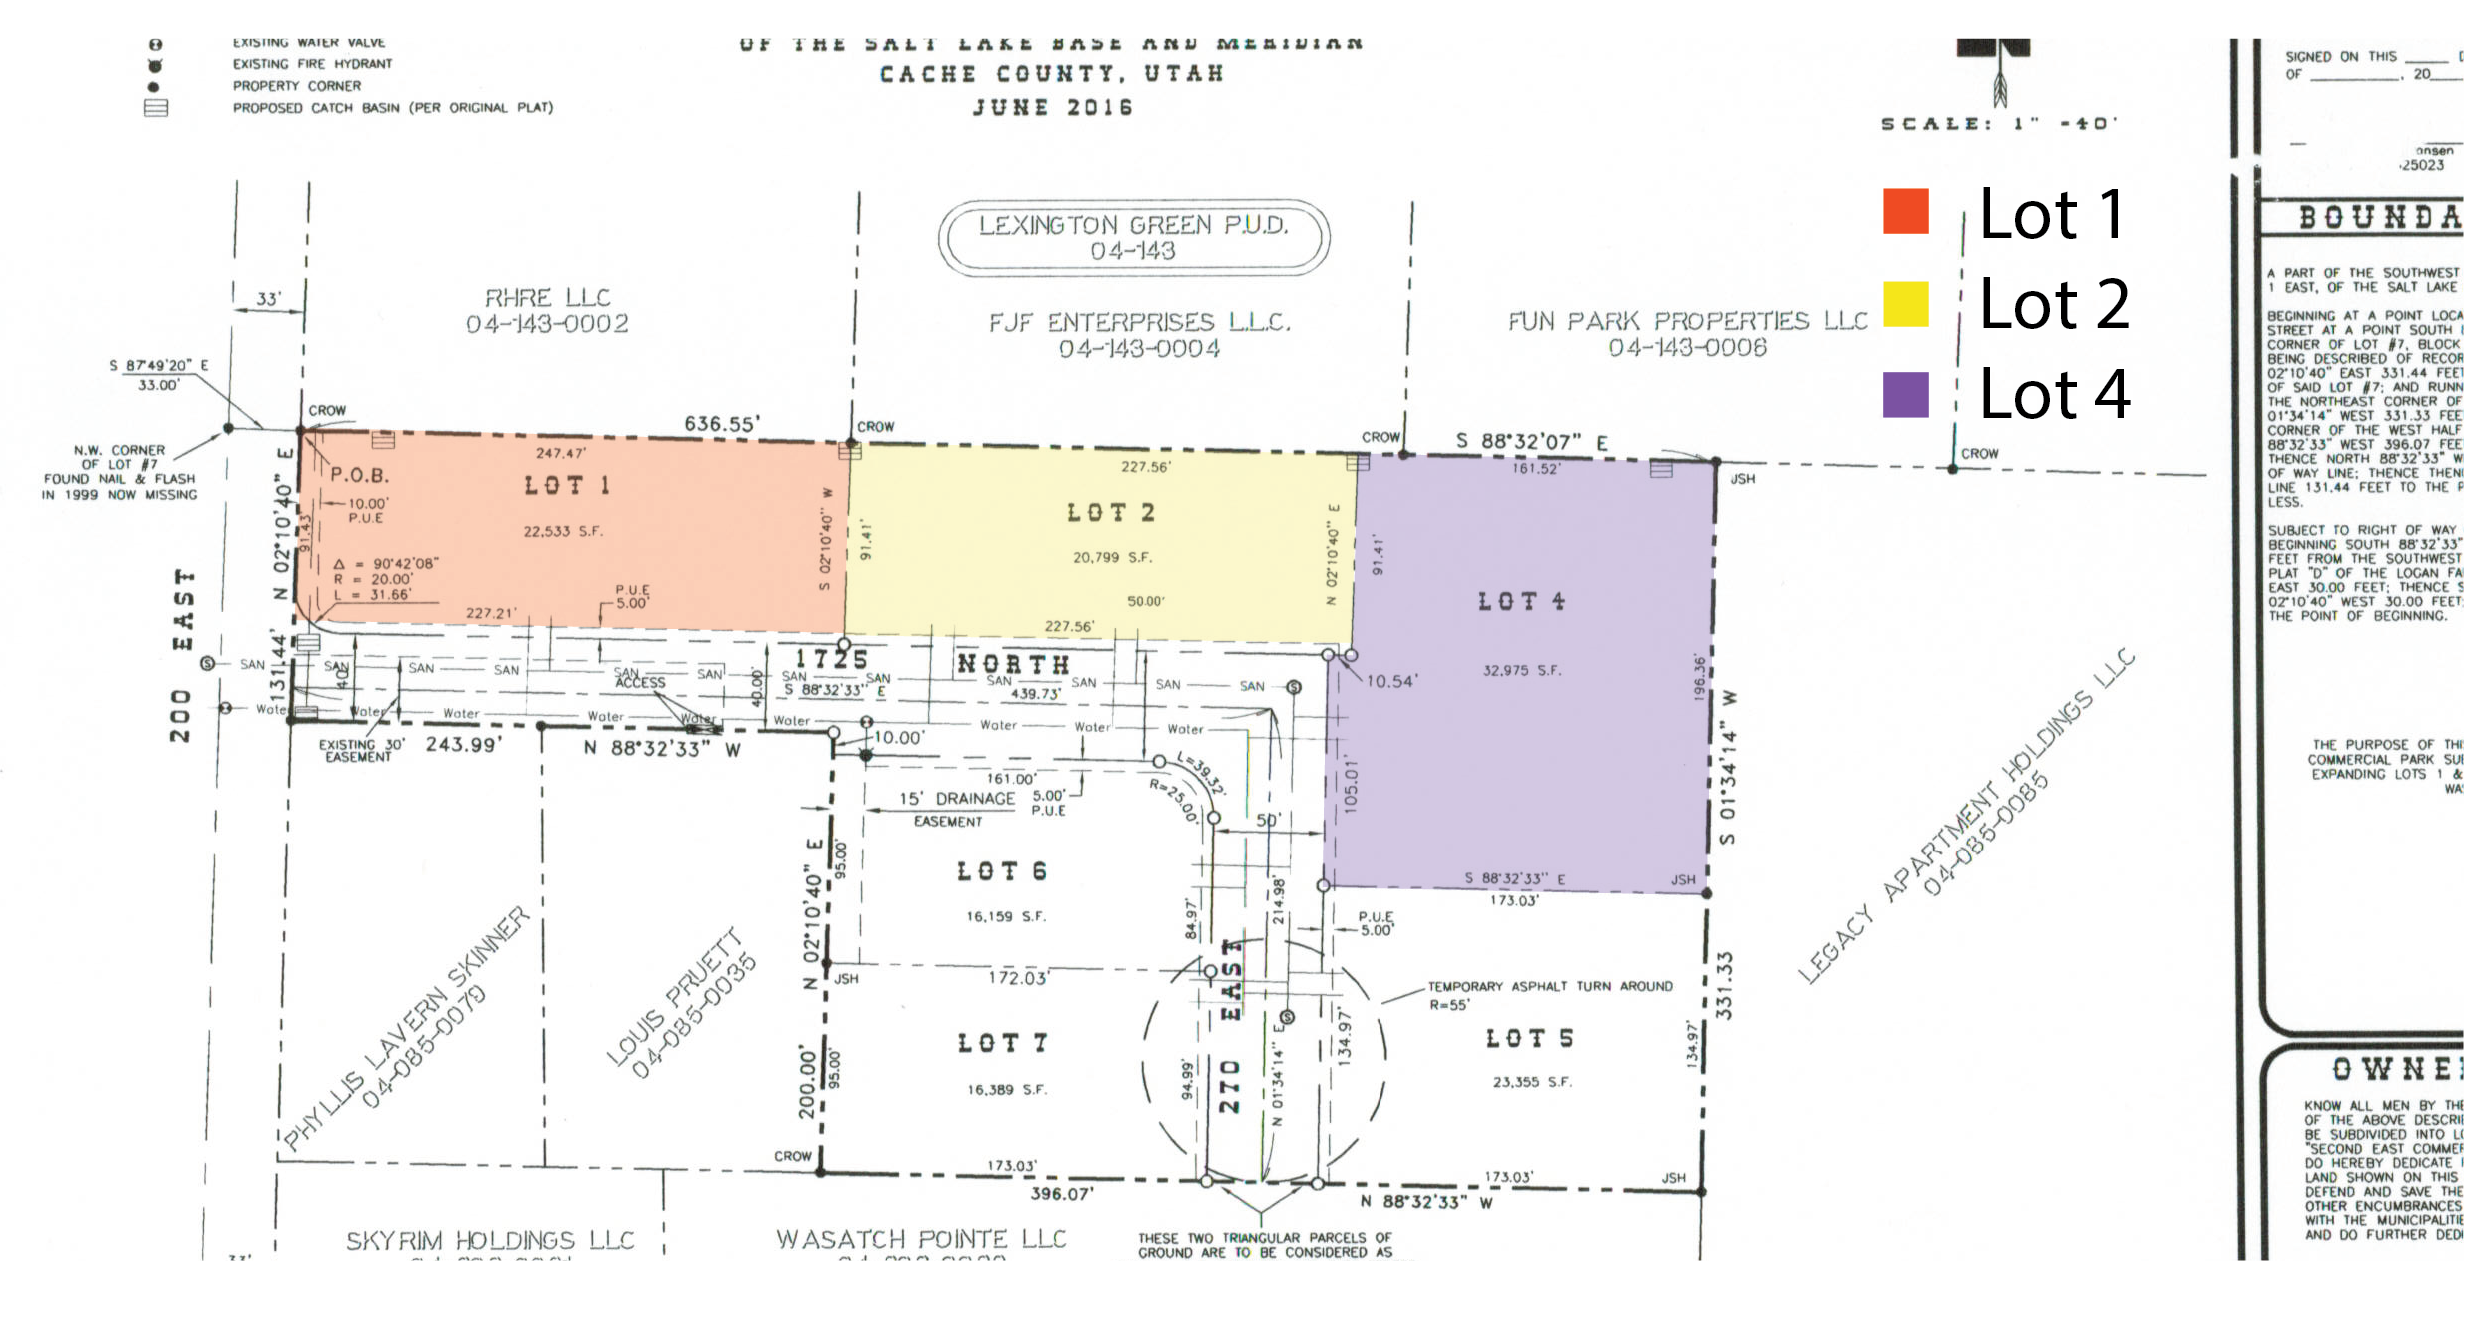 Second East Commercial Lots